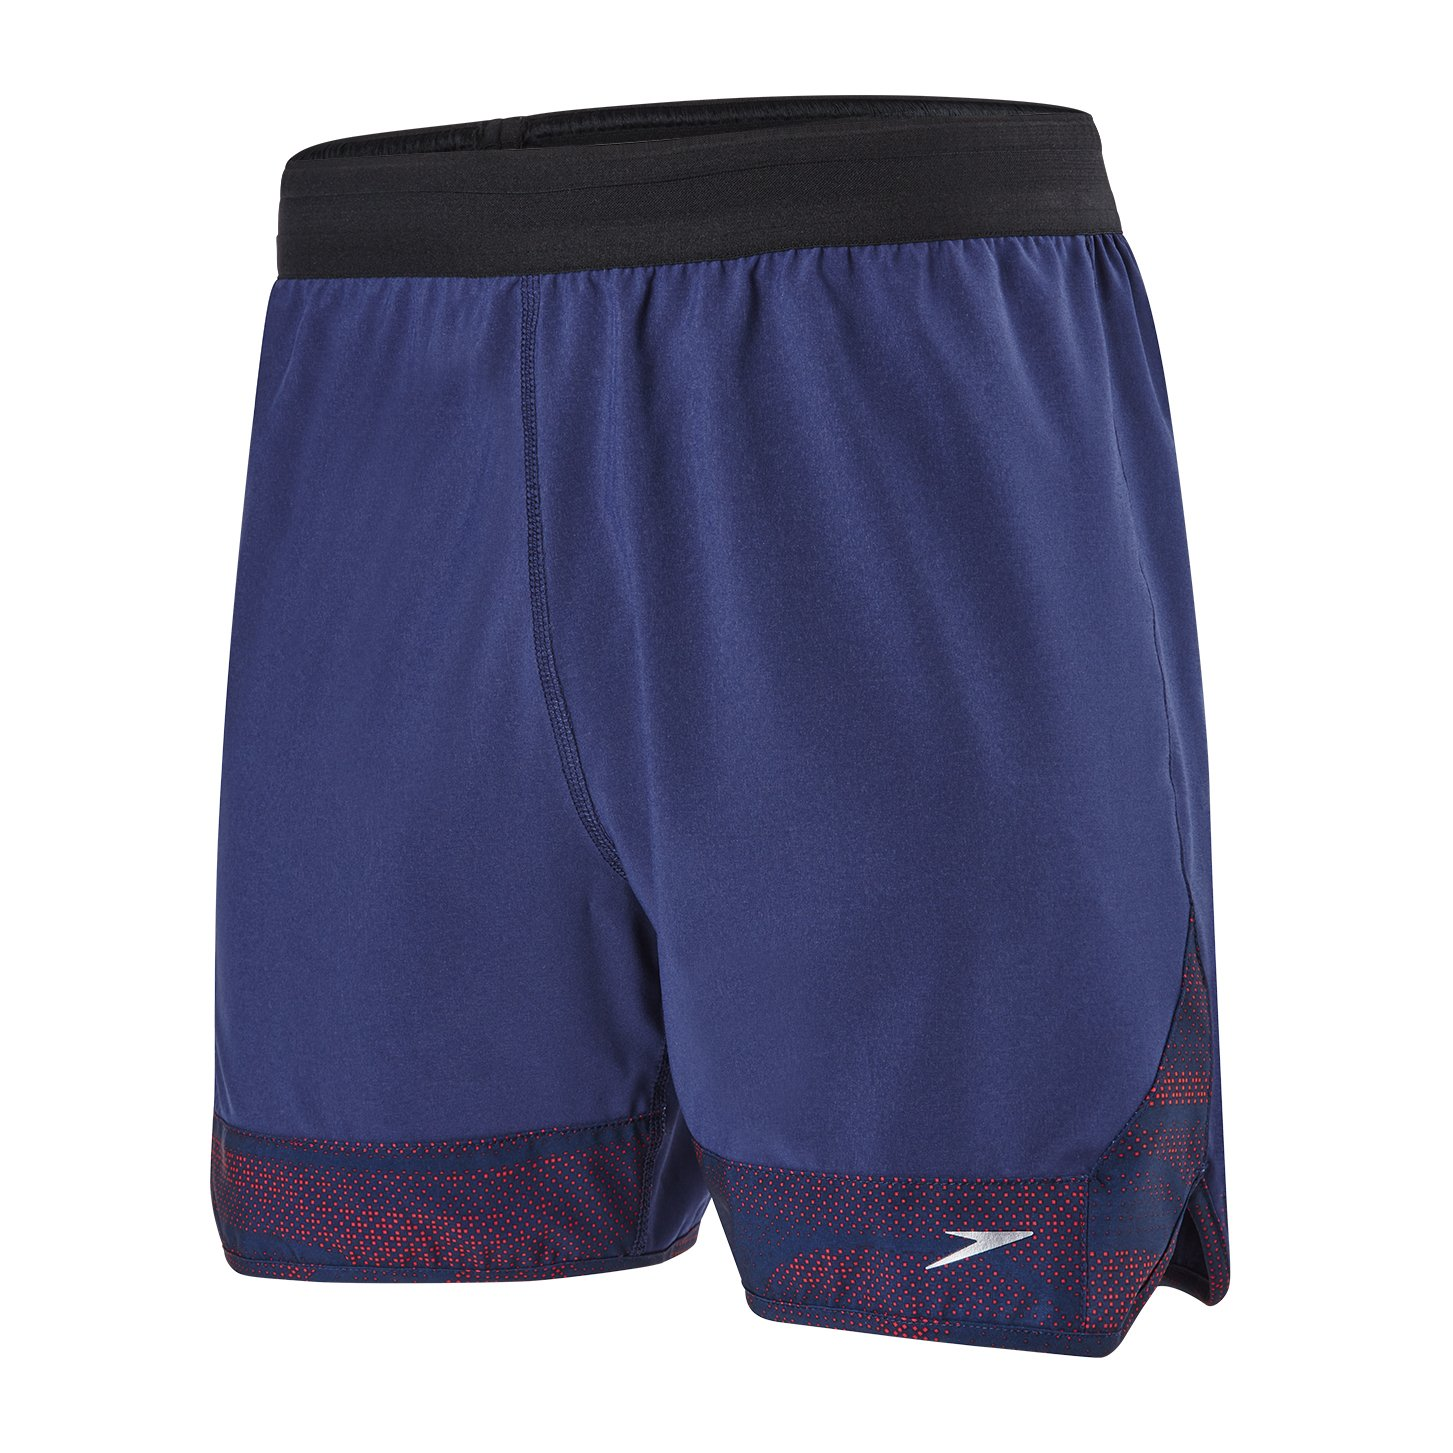 TALLA M. Speedo Boys 'Lane Trim (Bañador